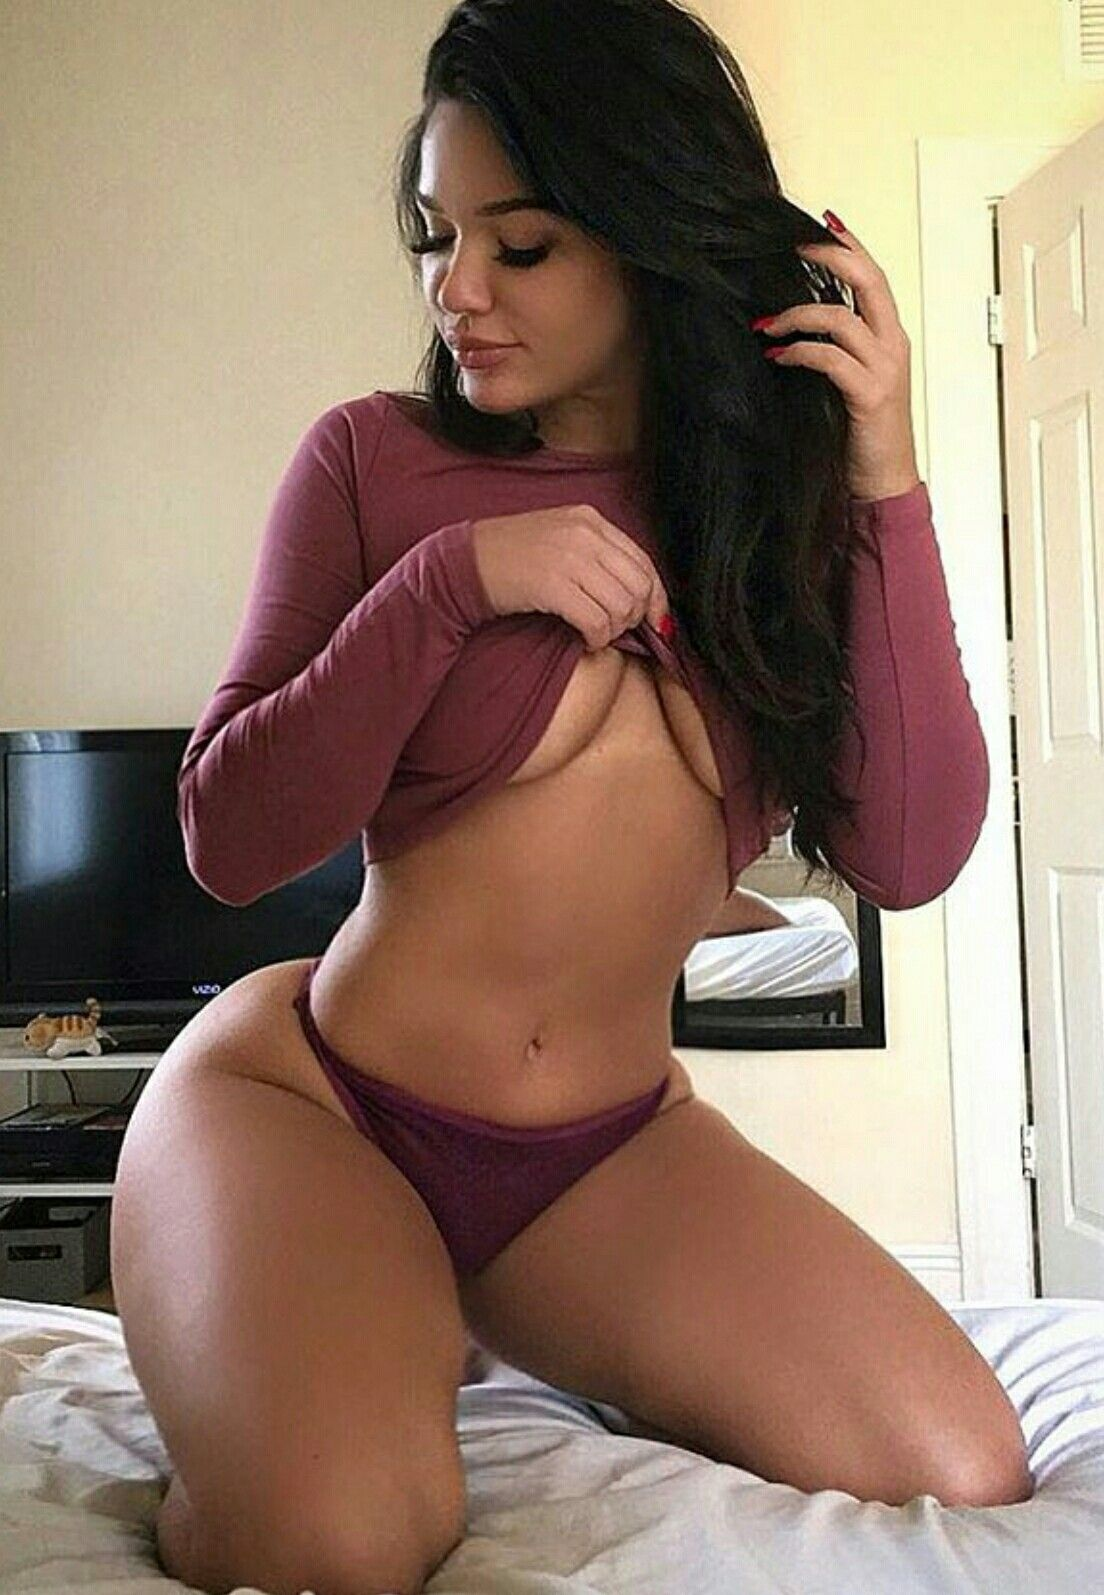 Genesis Lopez hot babe wants to get naked - Genesis Lopez Onlyfans Nude Big Tits Perfect Ass Shower